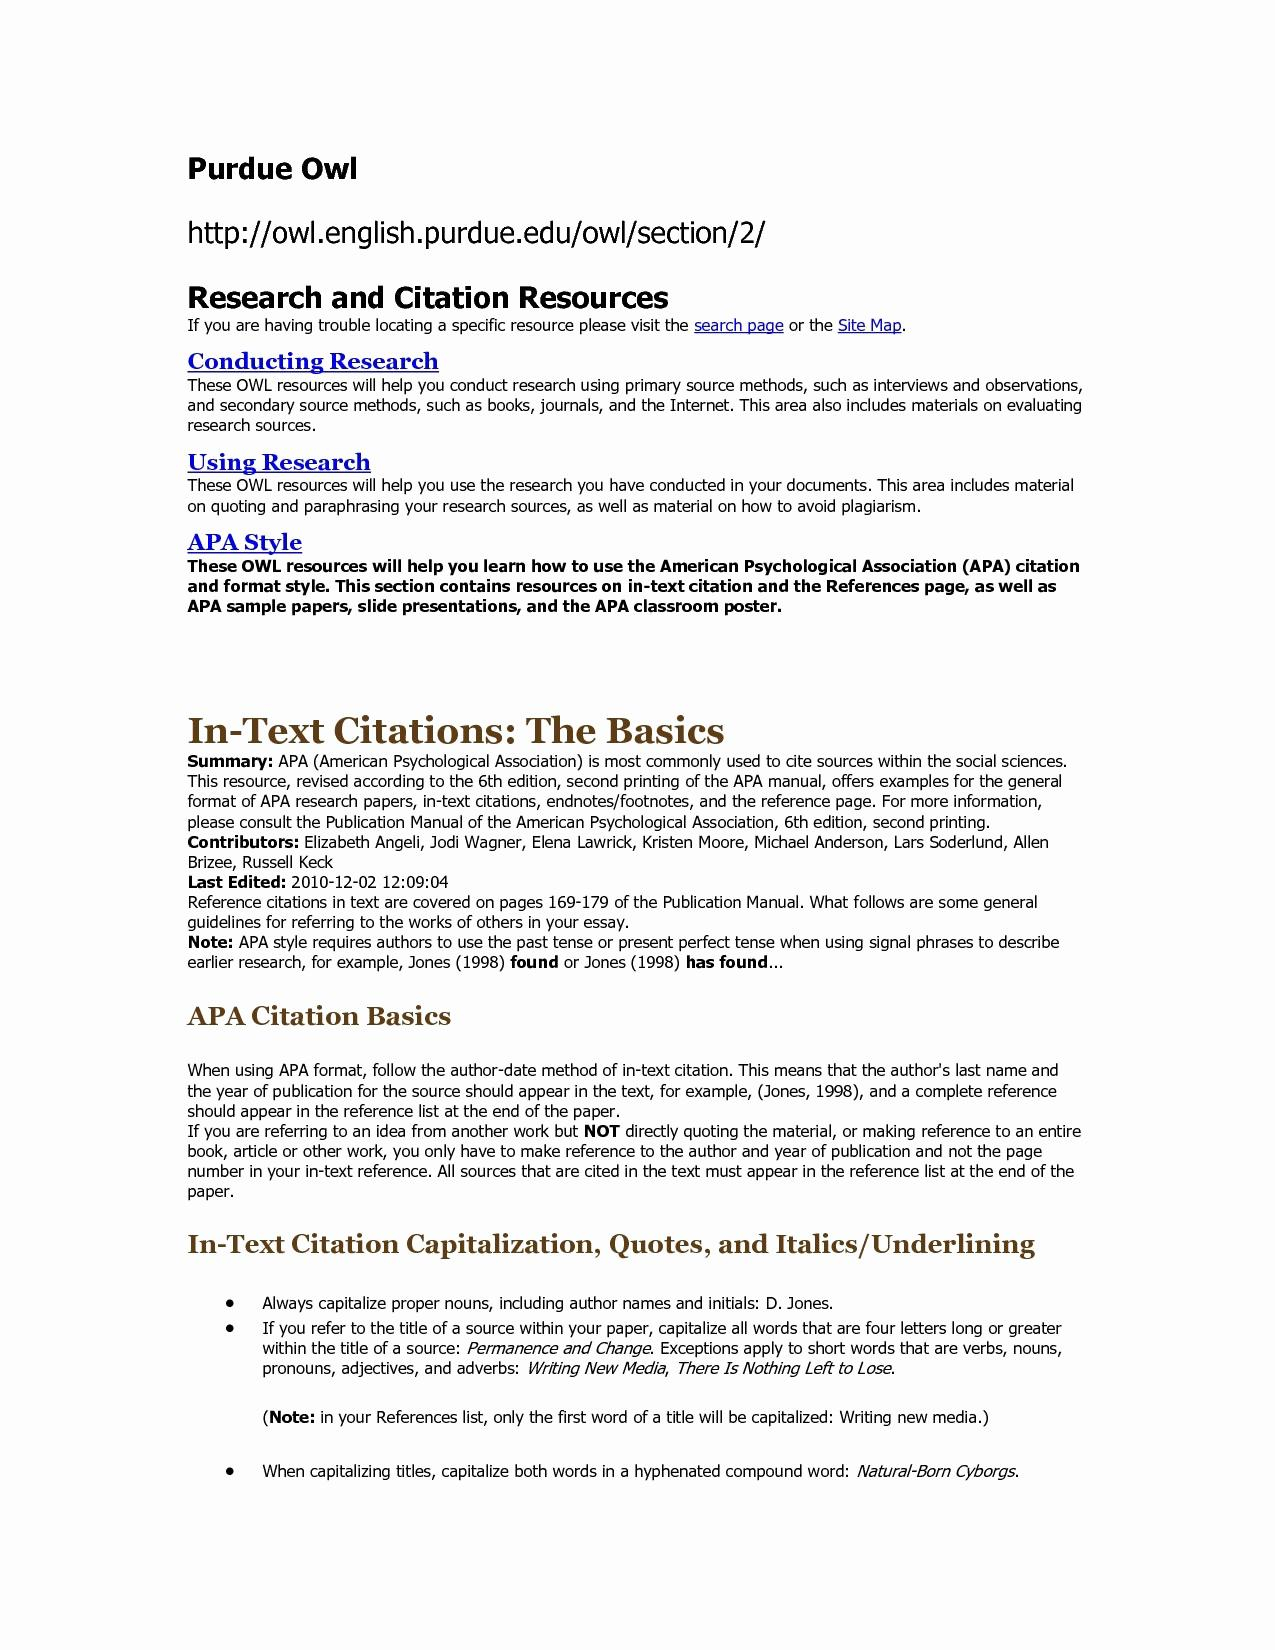 Purdue Owl Resume Template - Purdue Owl Cover Letter New Cover Letter or Resume First Resume